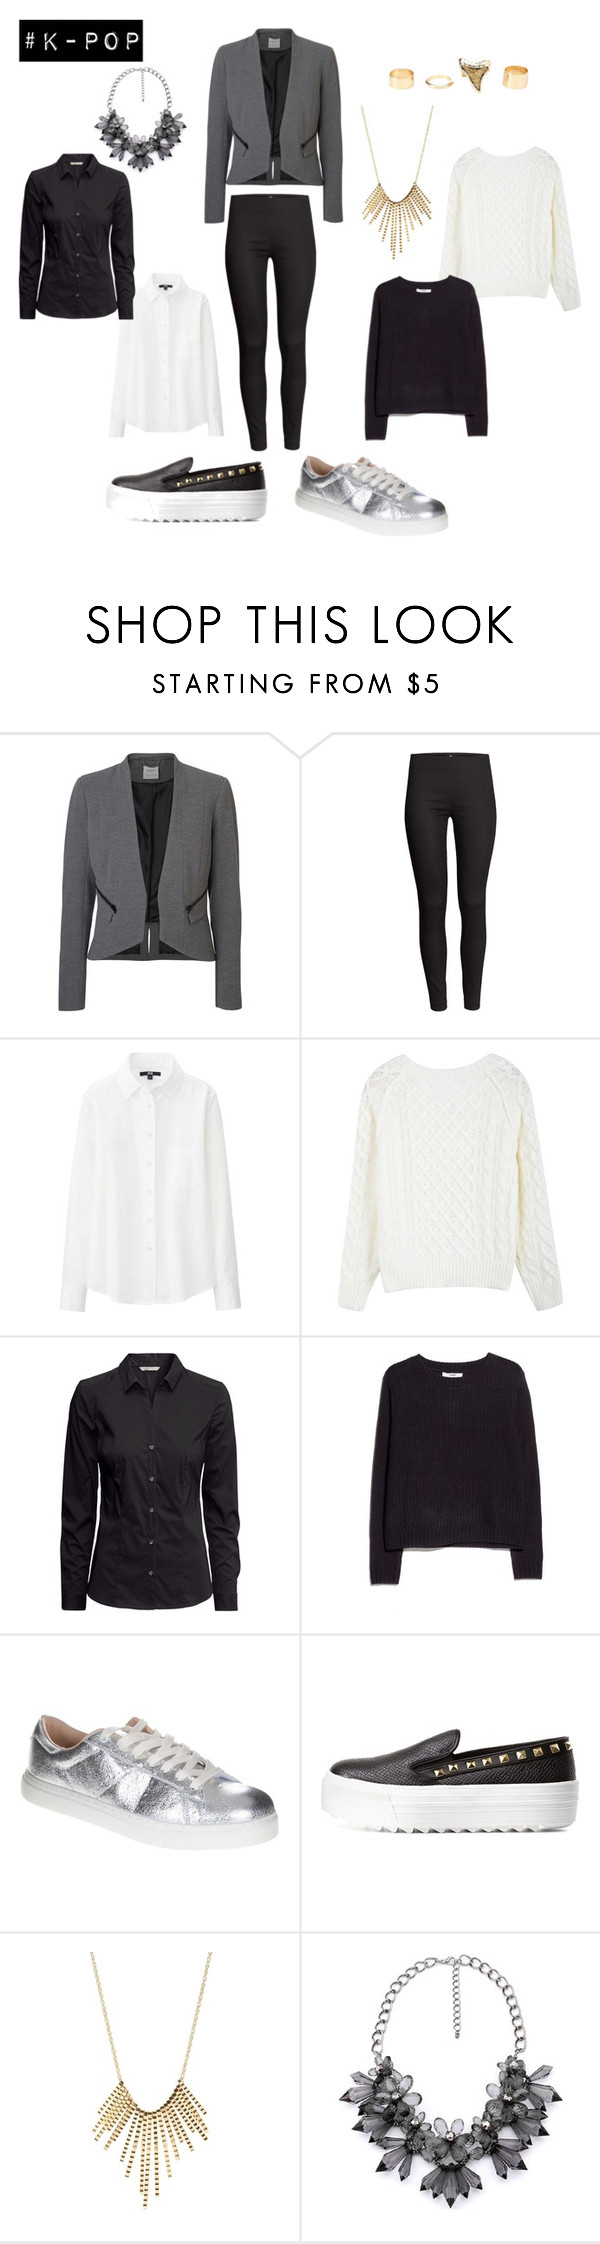 """""""Exo - Overdose"""" by carolinacoronac ❤ liked on Polyvore featuring H&M, Uniqlo, MANGO, M.N.G and Charlotte Russe"""